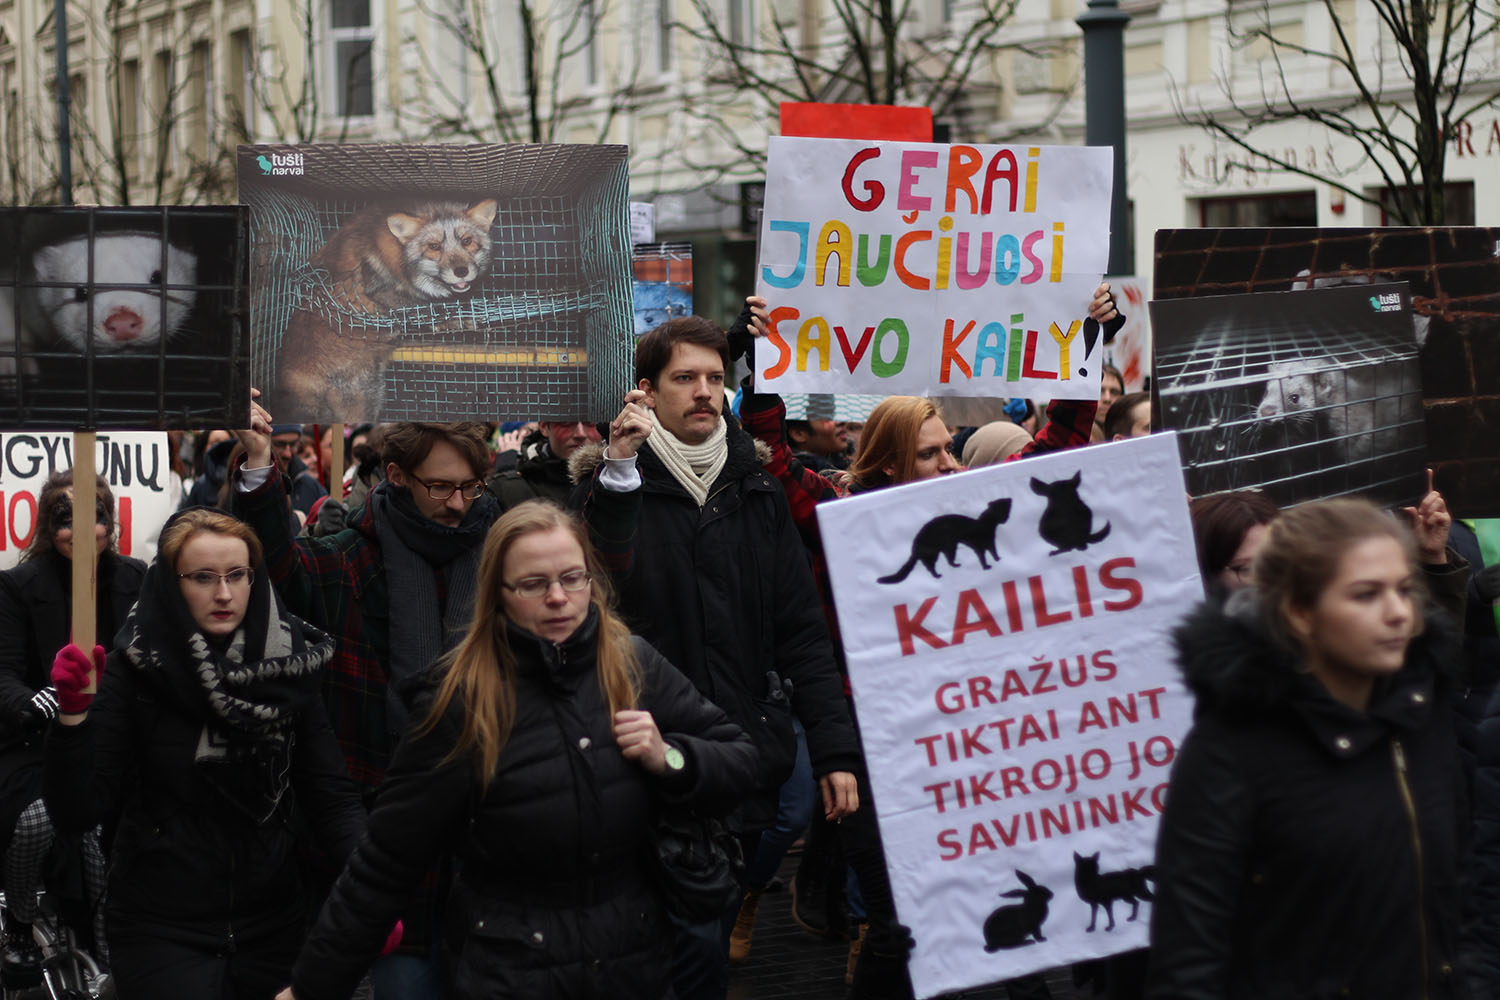 March against fur in Lithuania